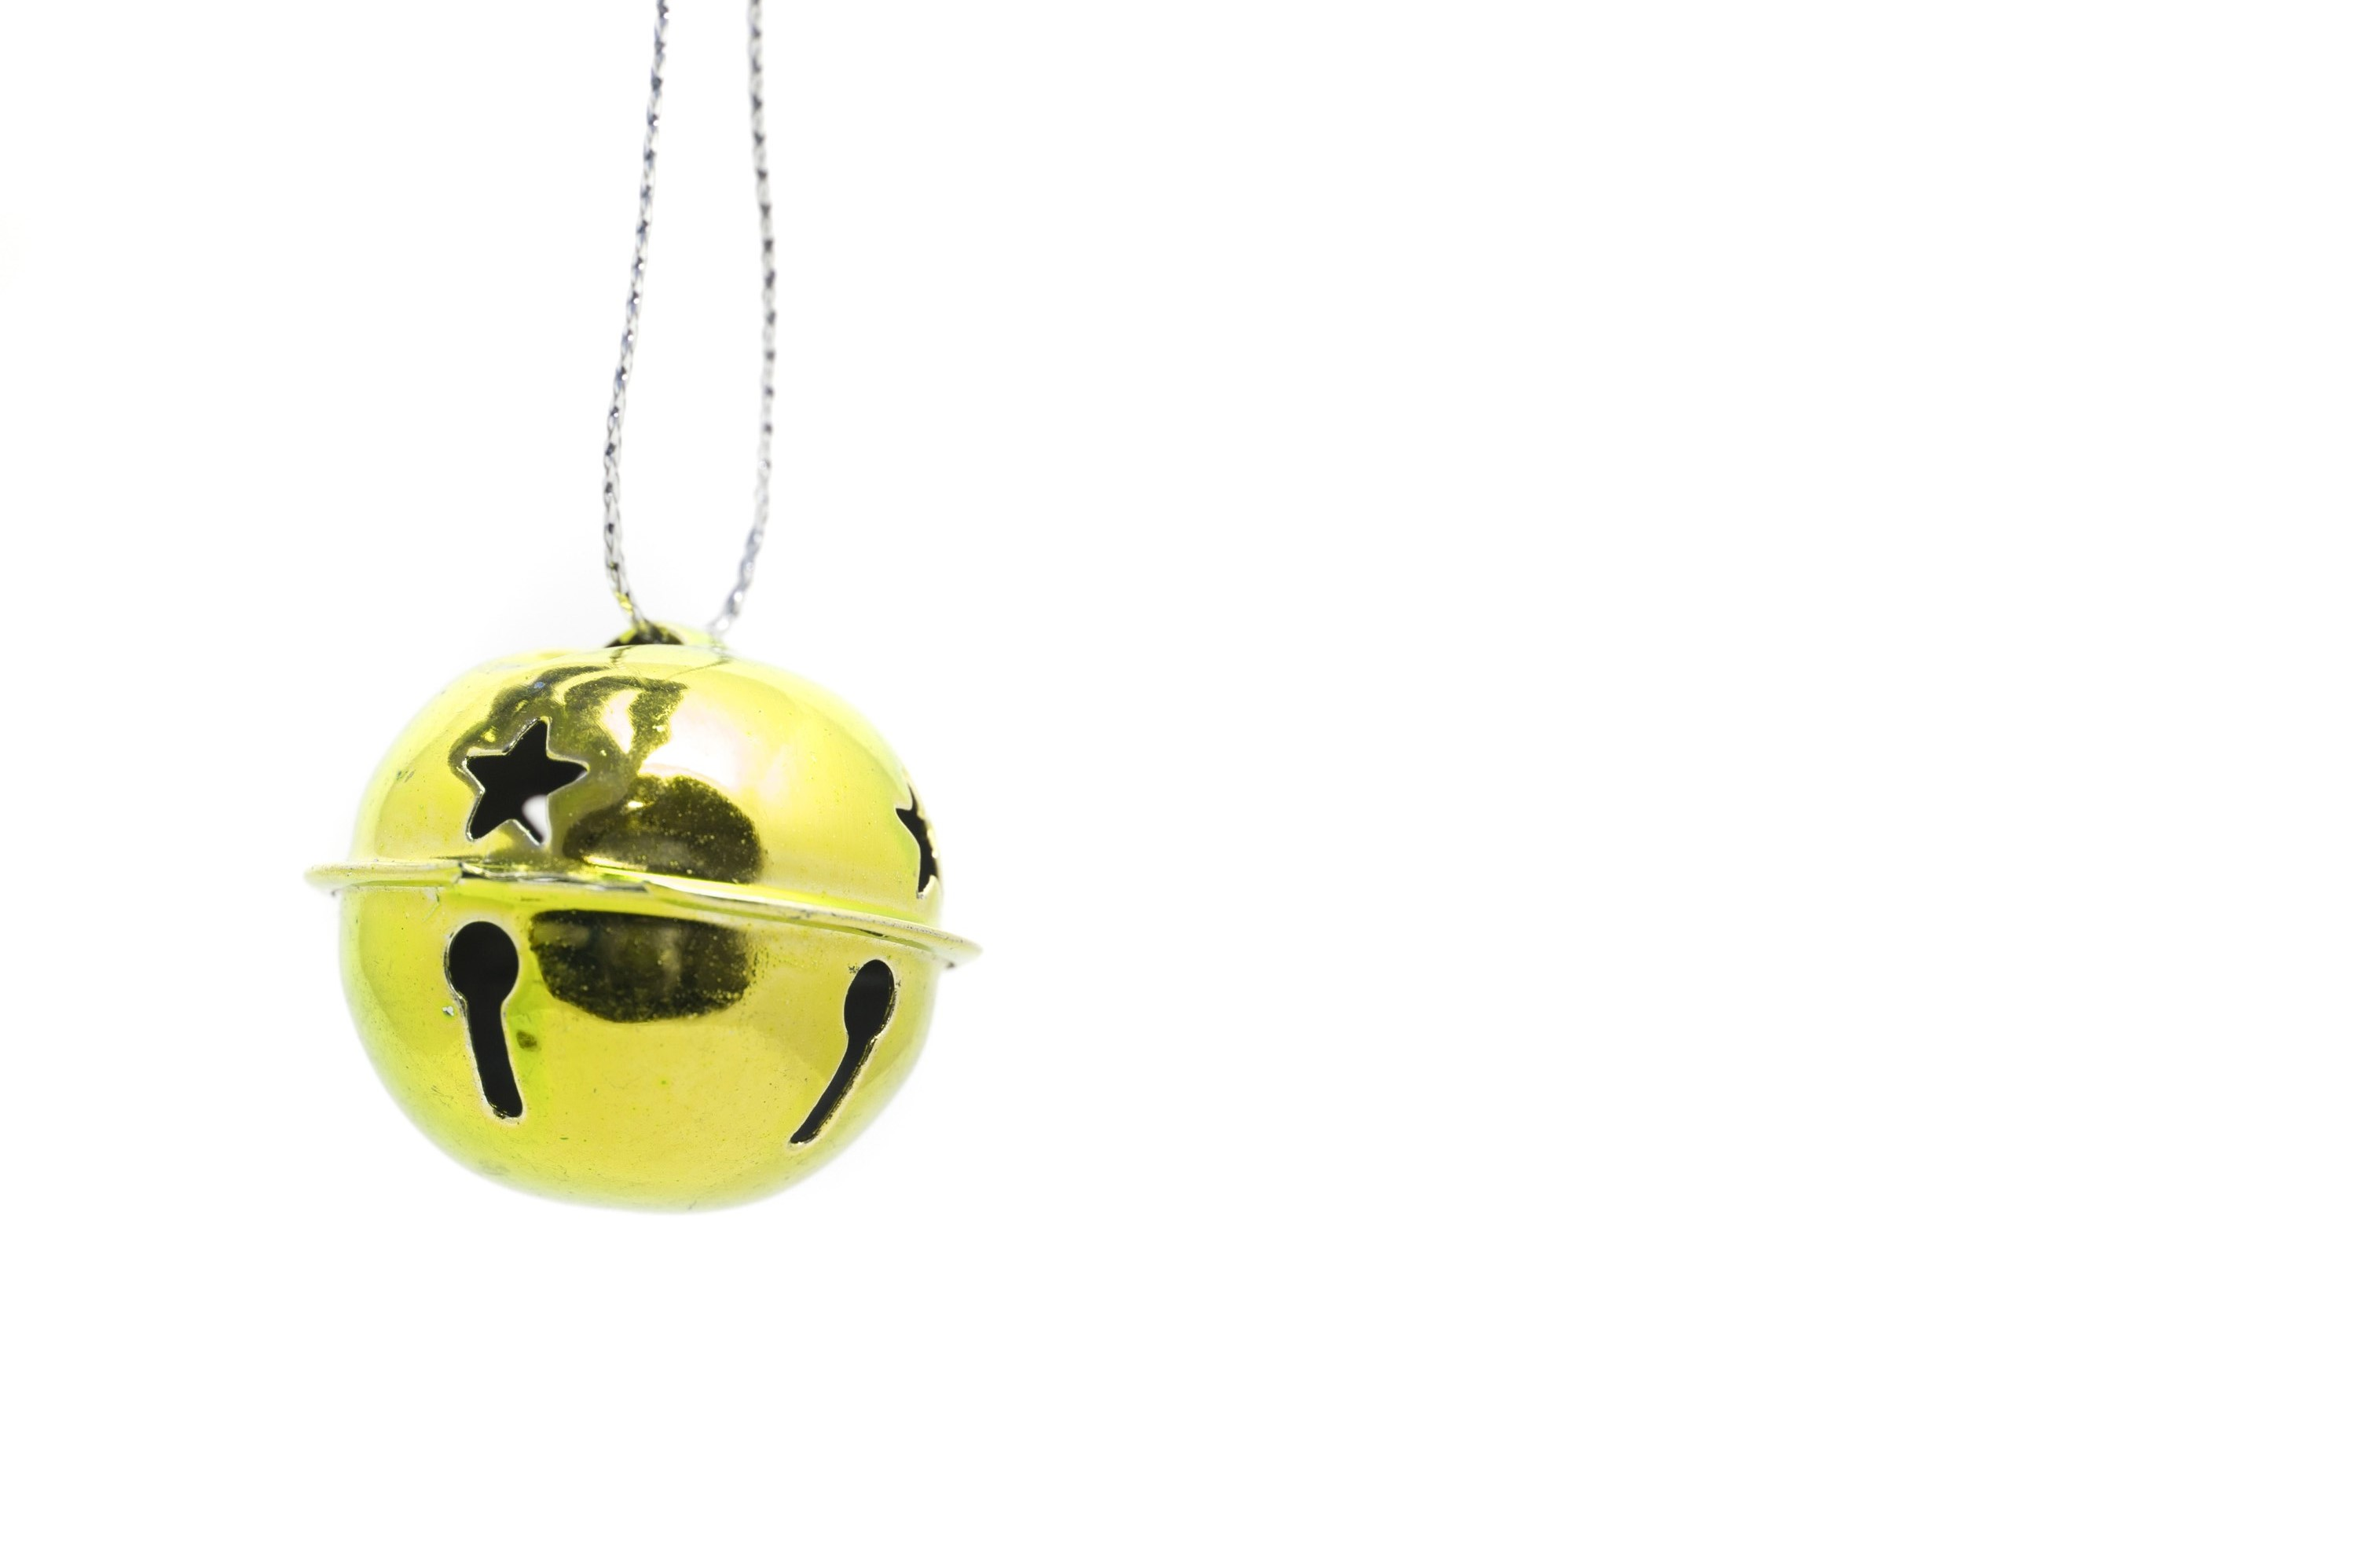 photo of single gold jingle bell free christmas images